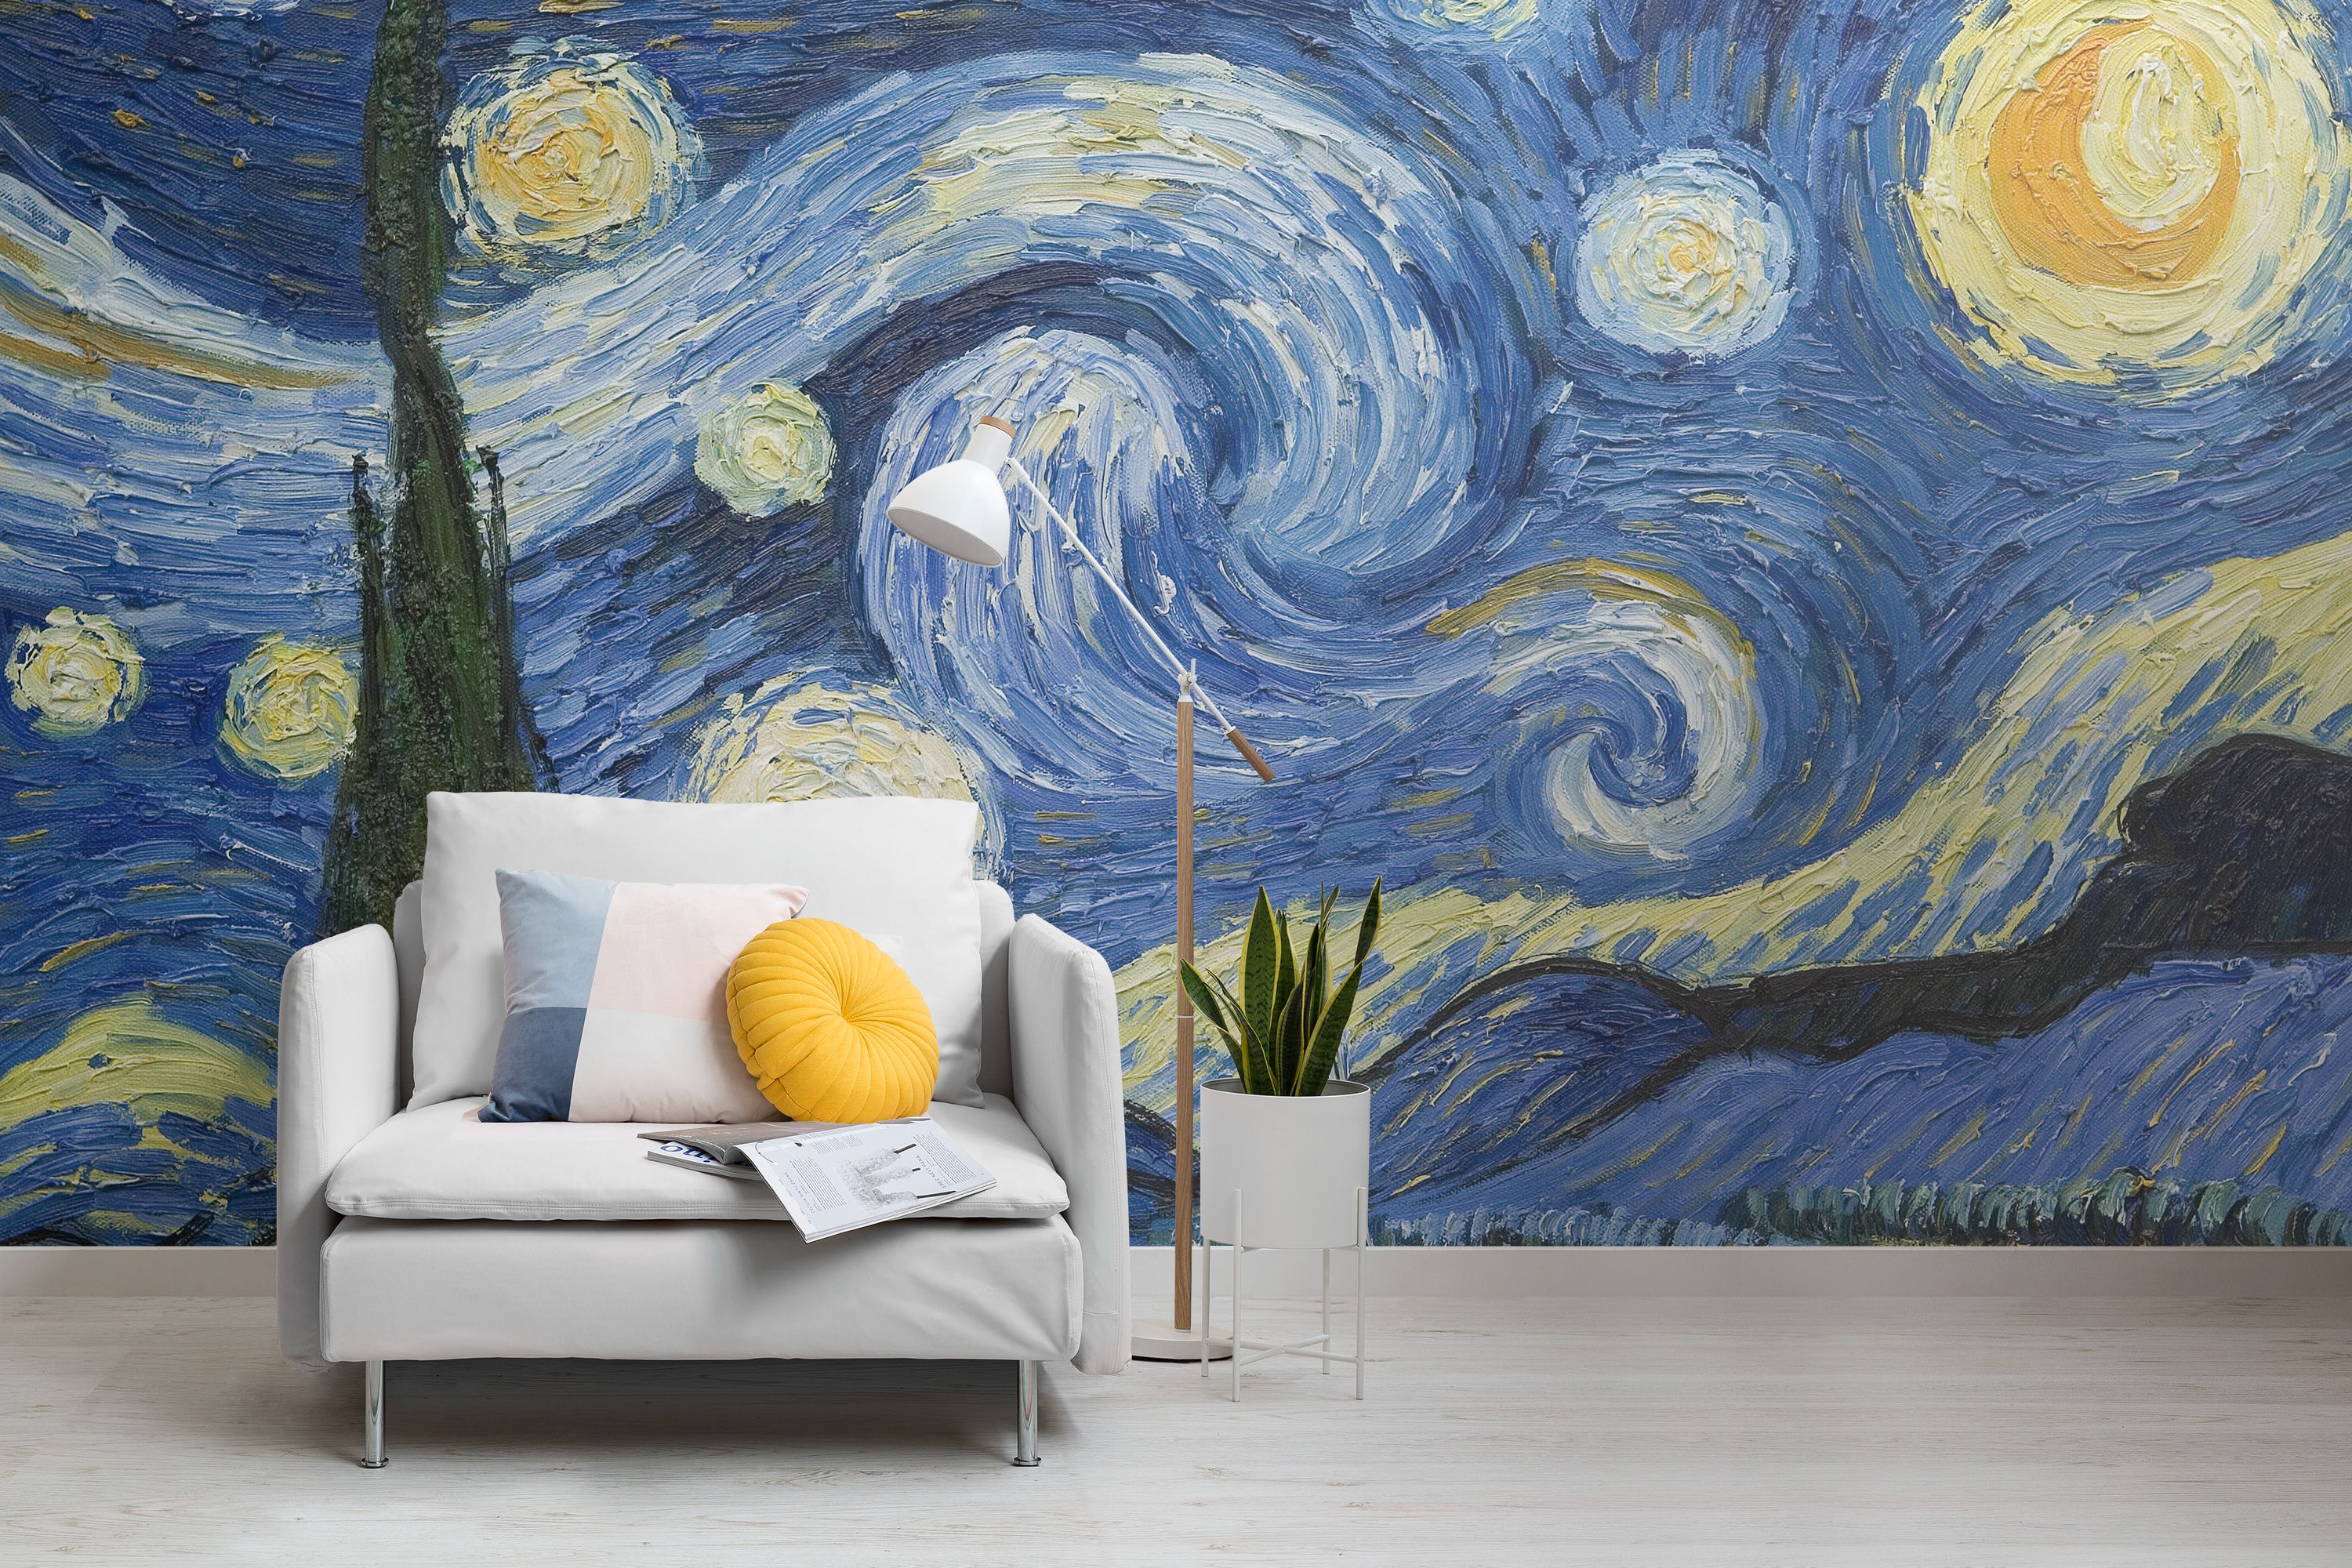 Van Gogh Paintings Now Available As Wallpaper Murals In